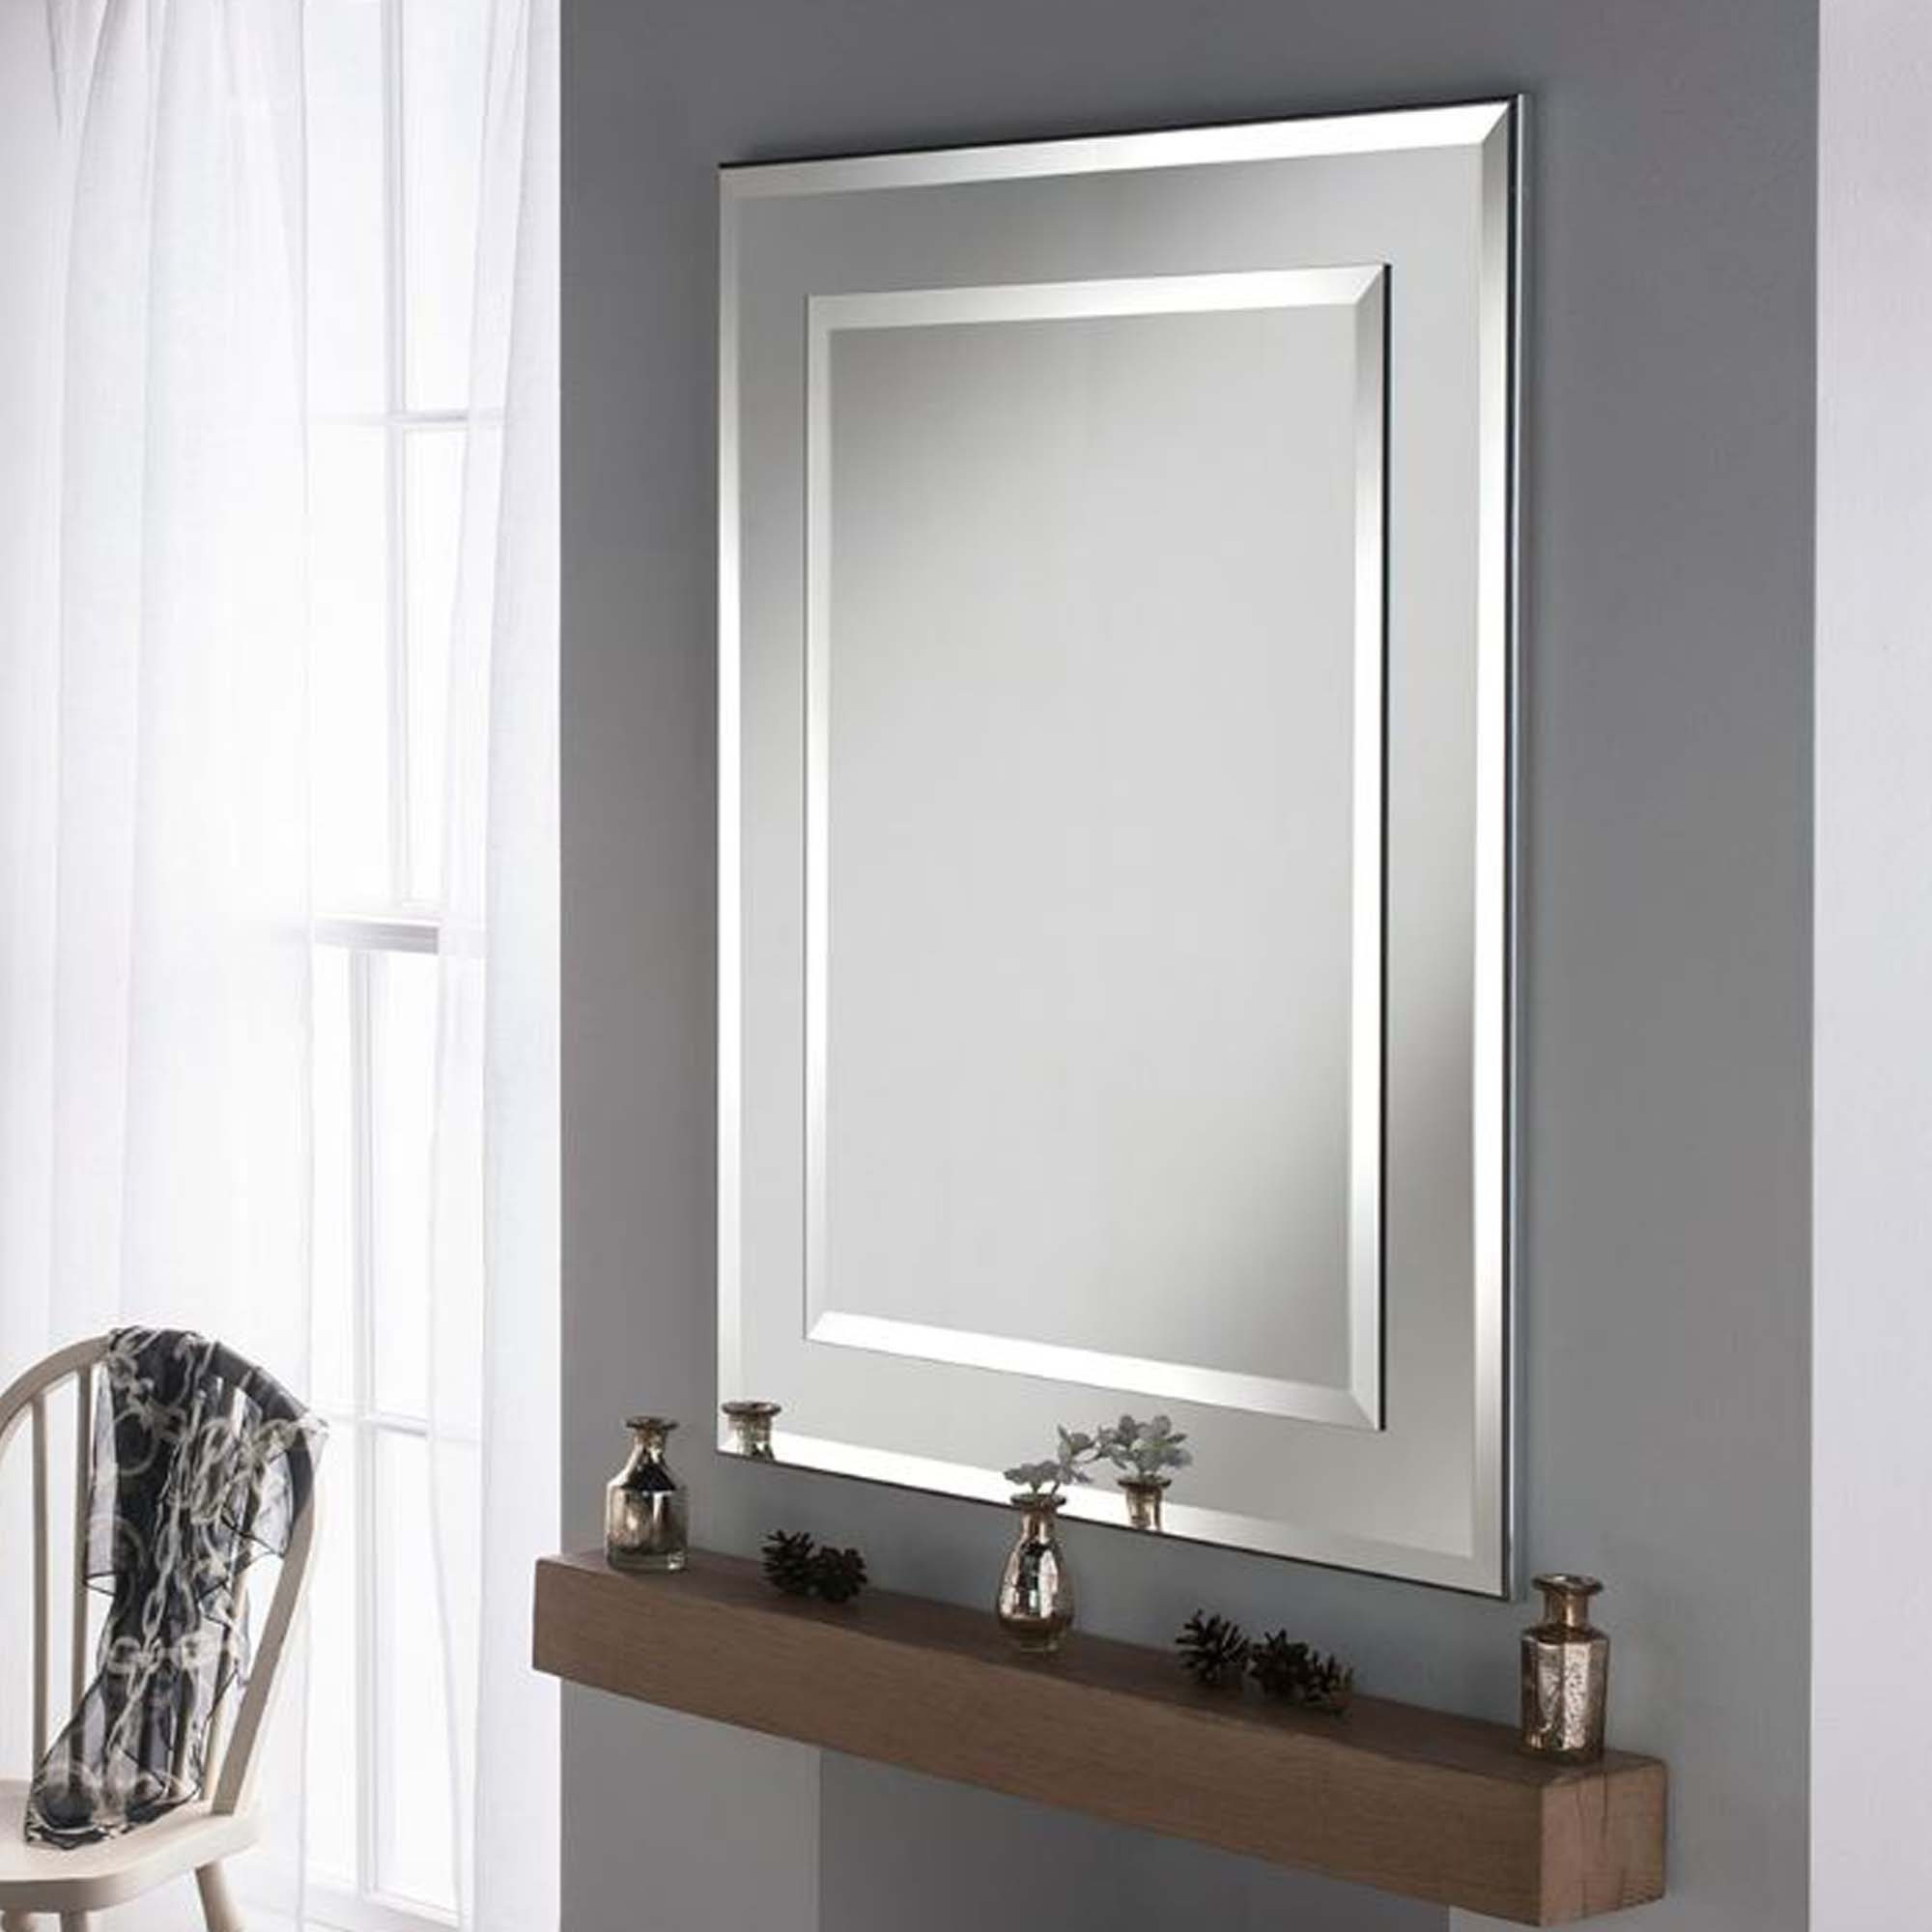 Well Liked Silver Framed Wall Mirrors Pertaining To Contemporary Wall Mirror Rectangular Silver Frame (Gallery 10 of 20)